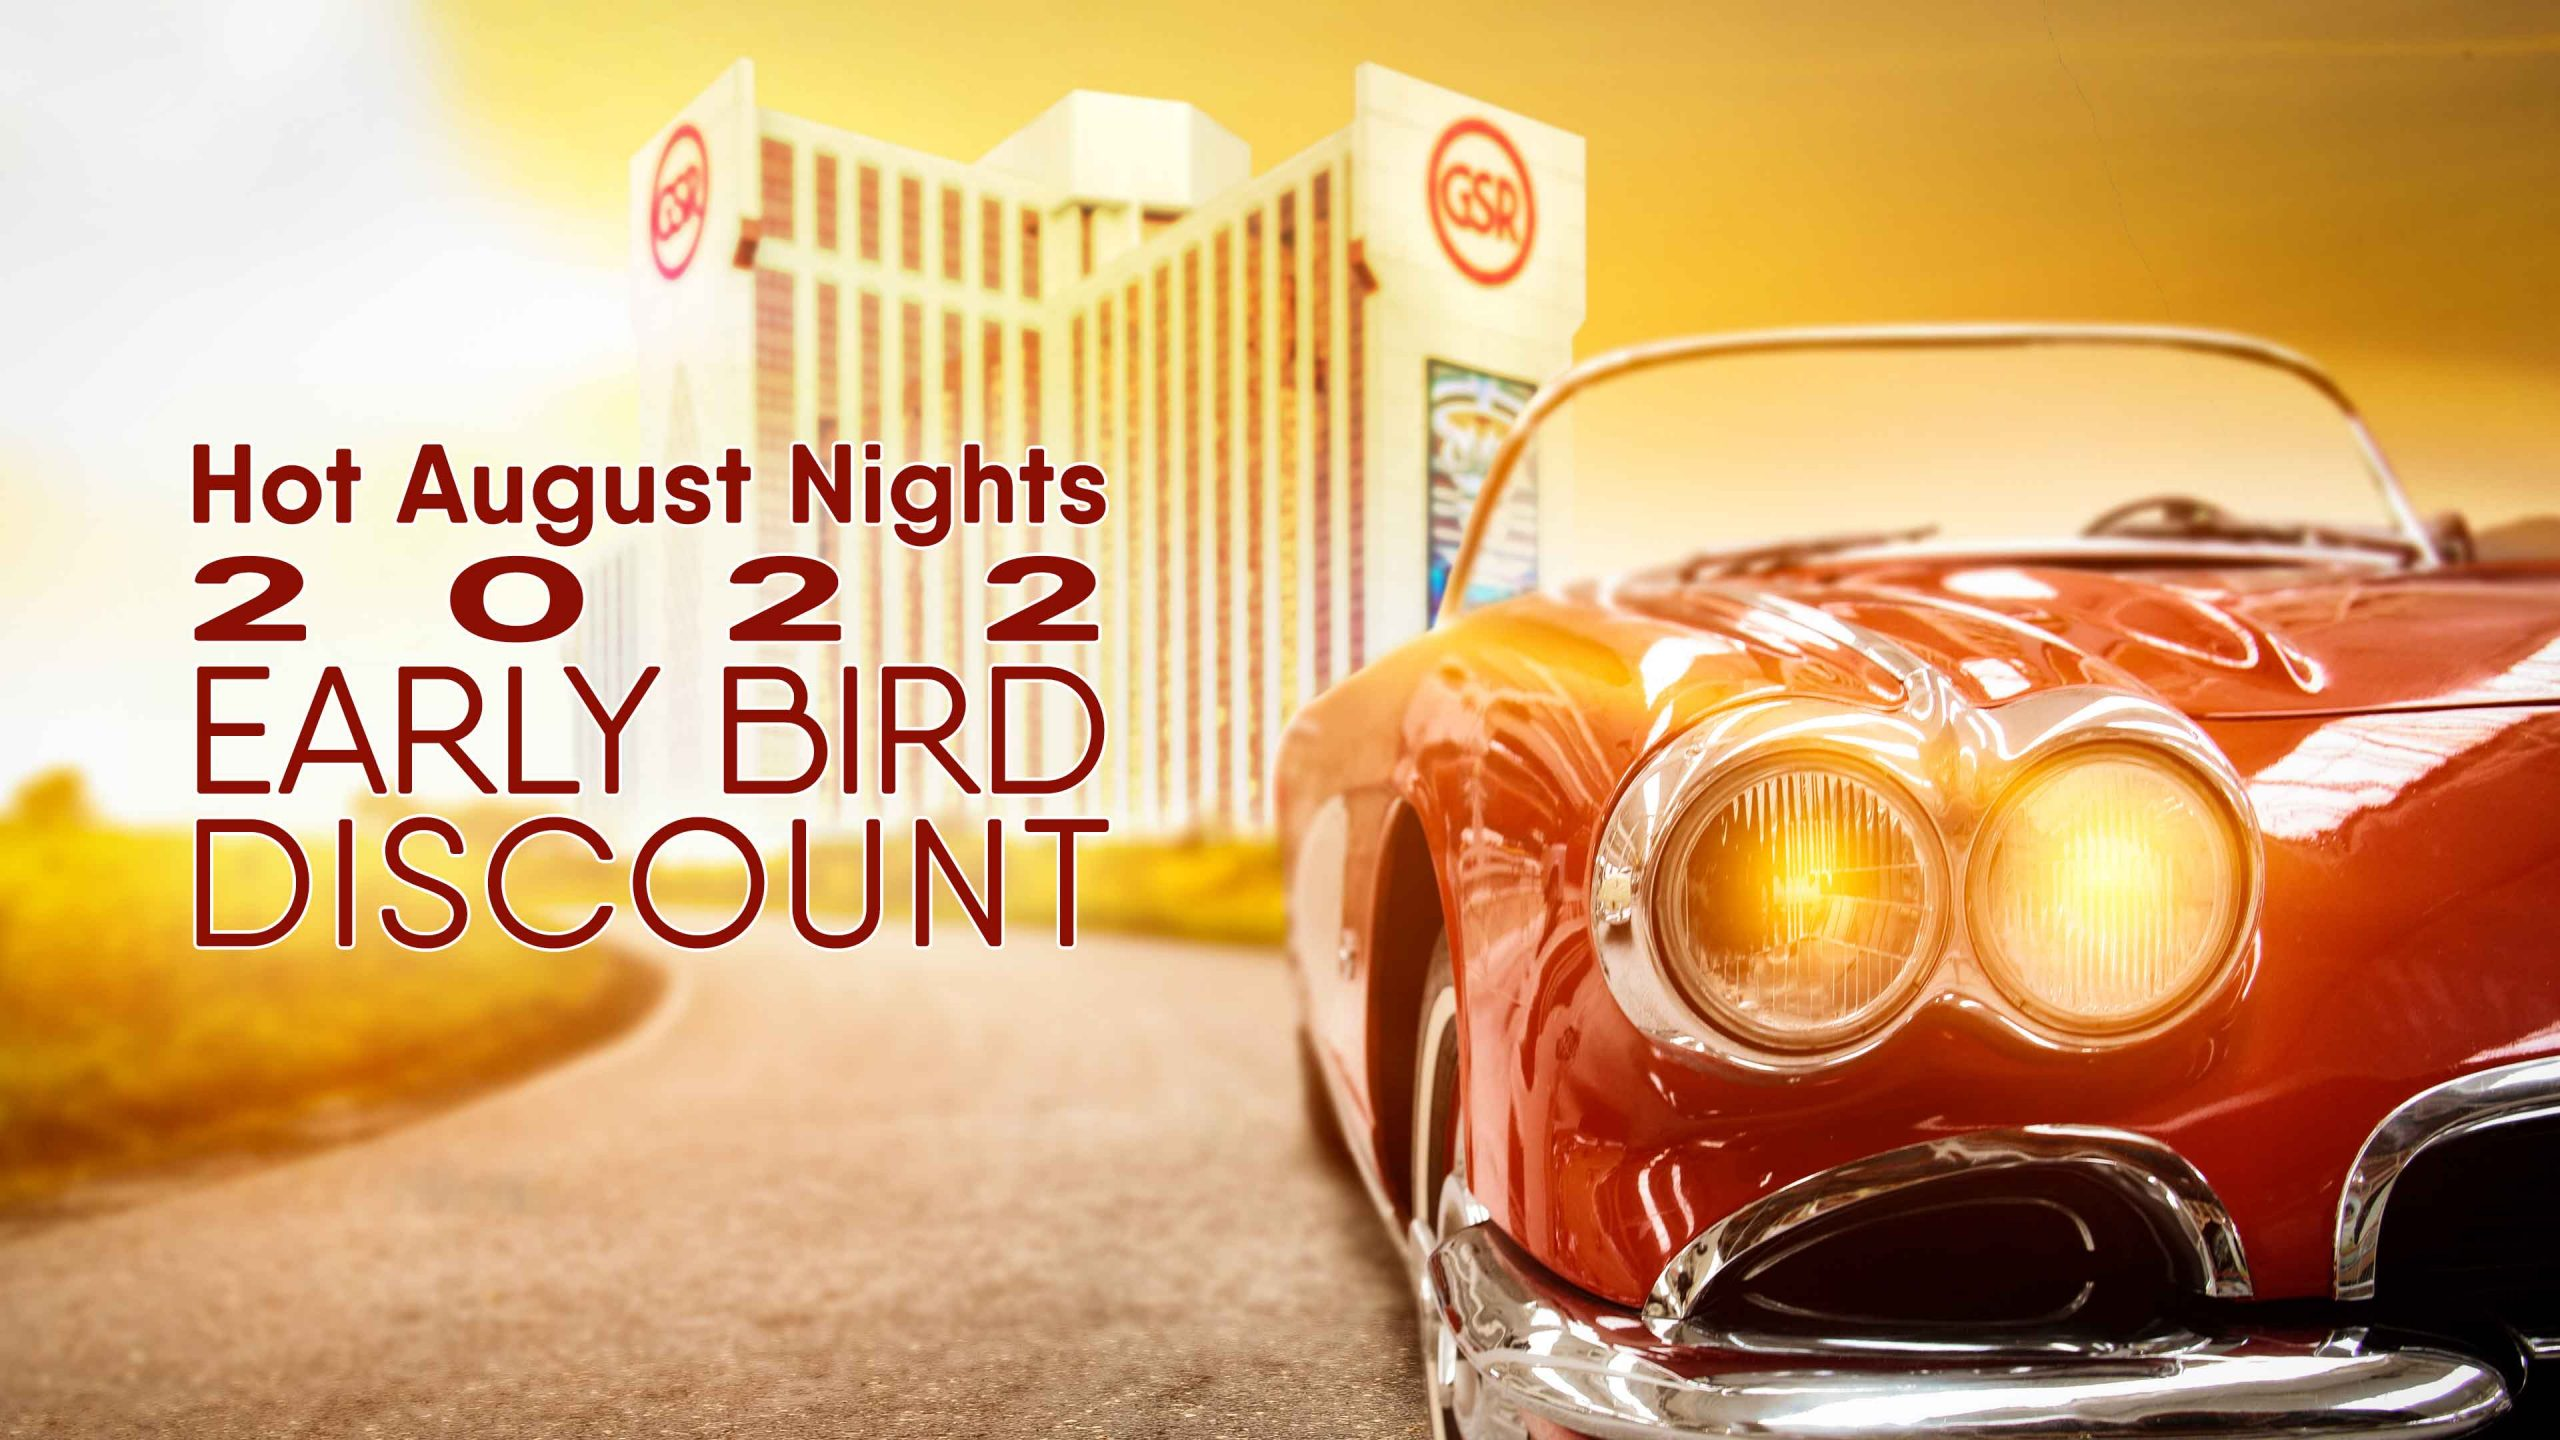 Hot August Nights 2022 Early Bird Discount